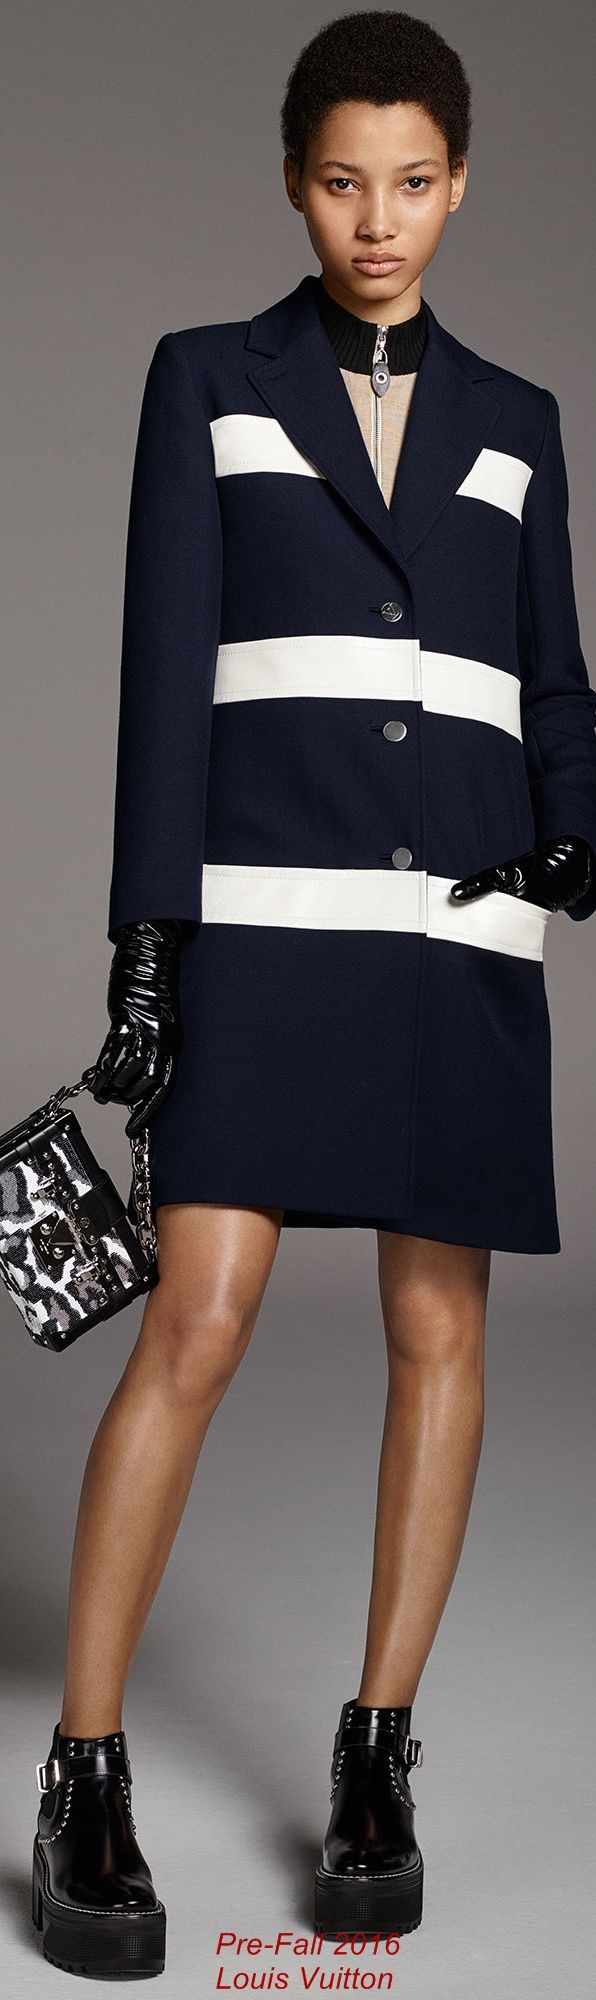 Pre-Fall 2016 Louis Vuitton